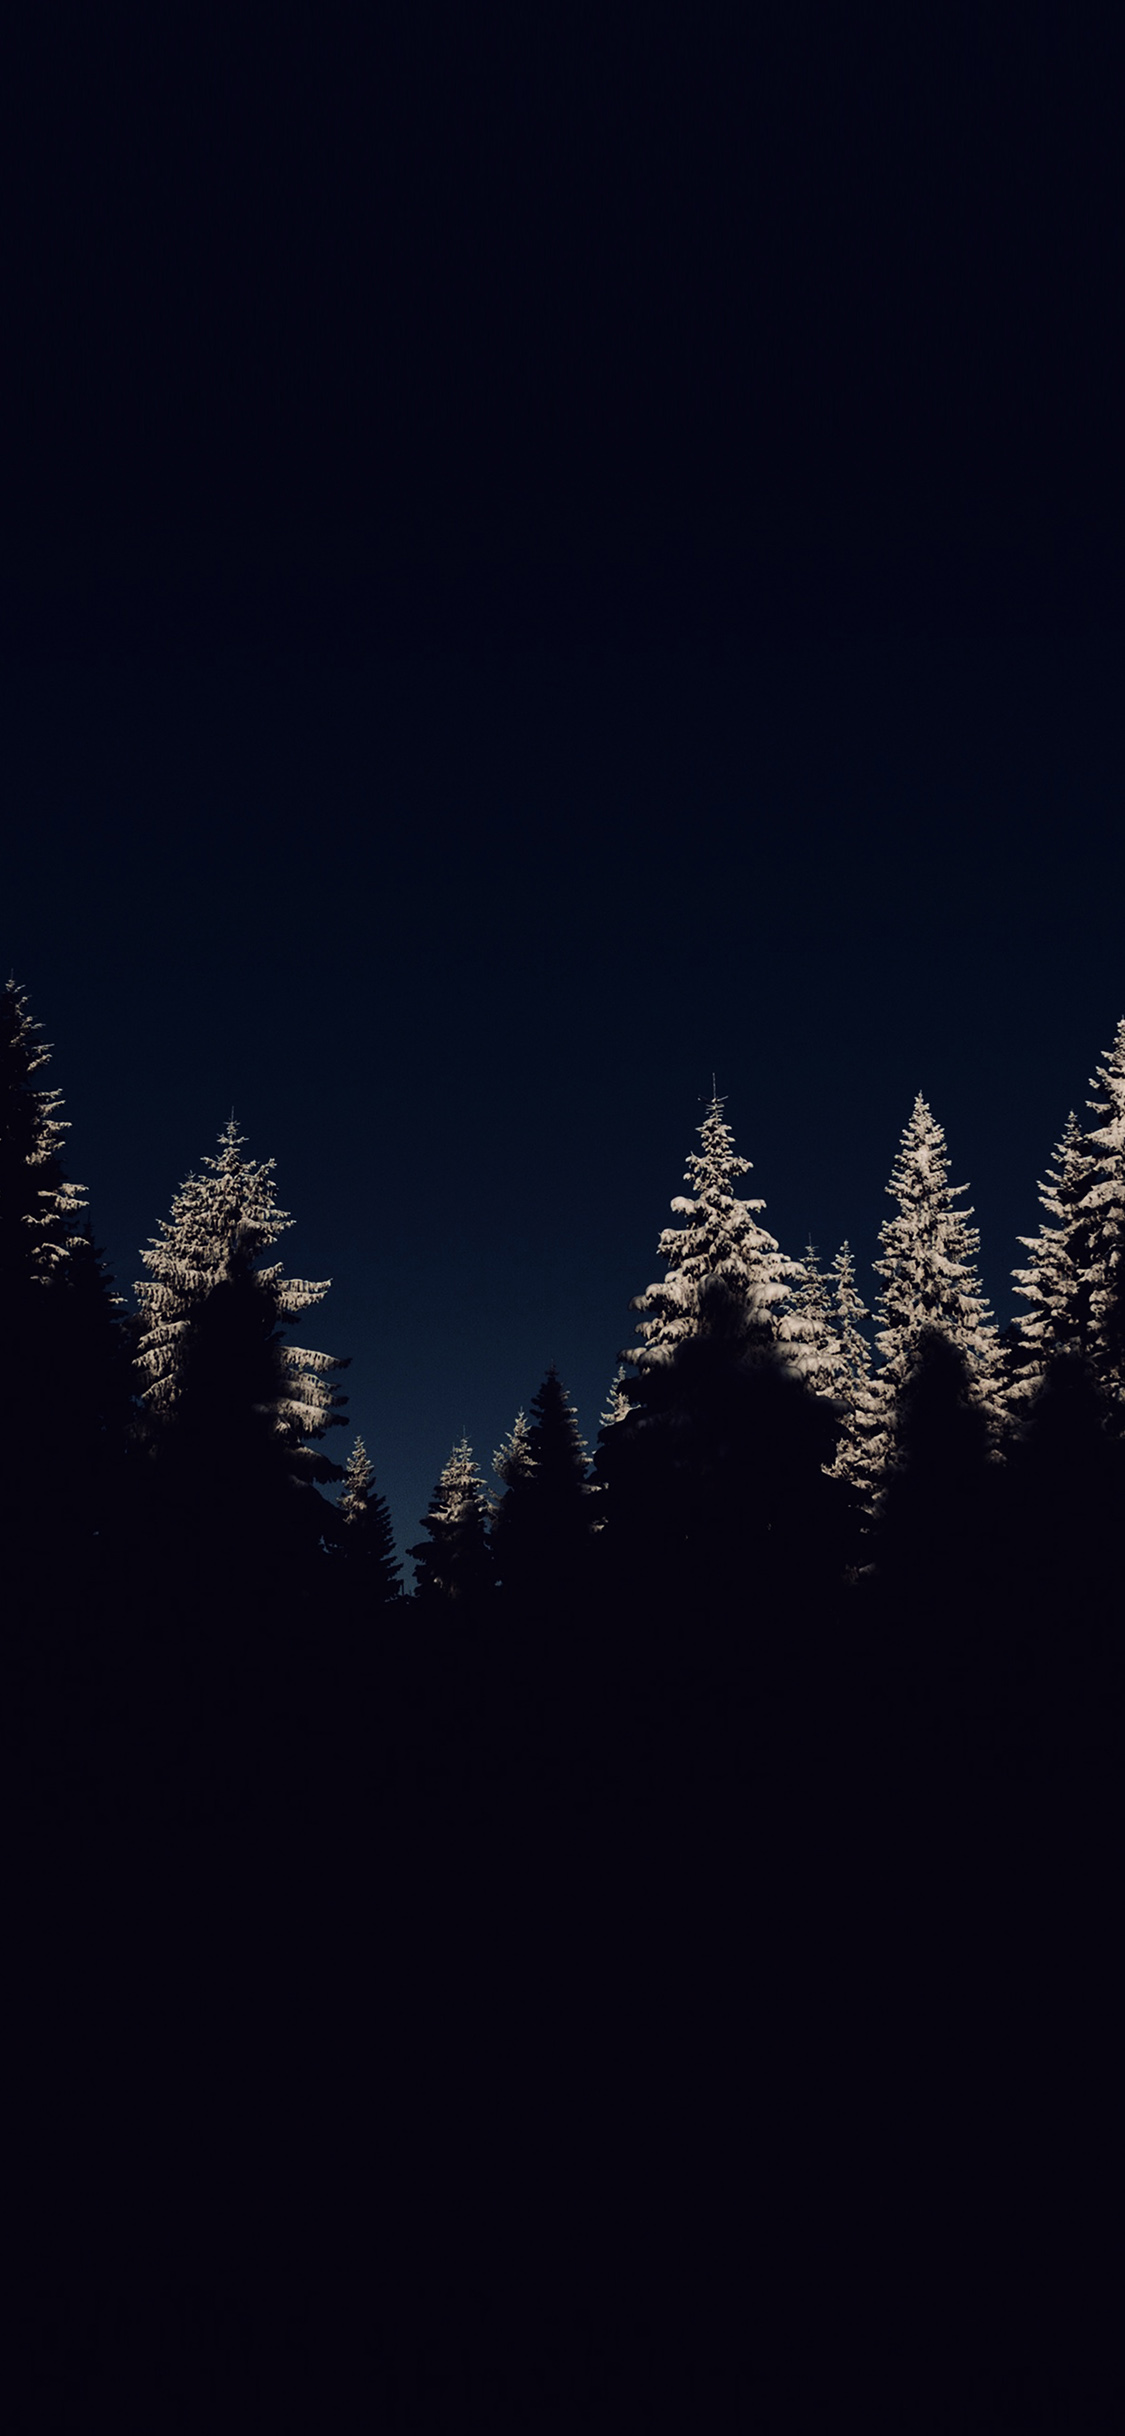 Iphonexpapers Com Iphone X Wallpaper Nl45 Wood Winter Night